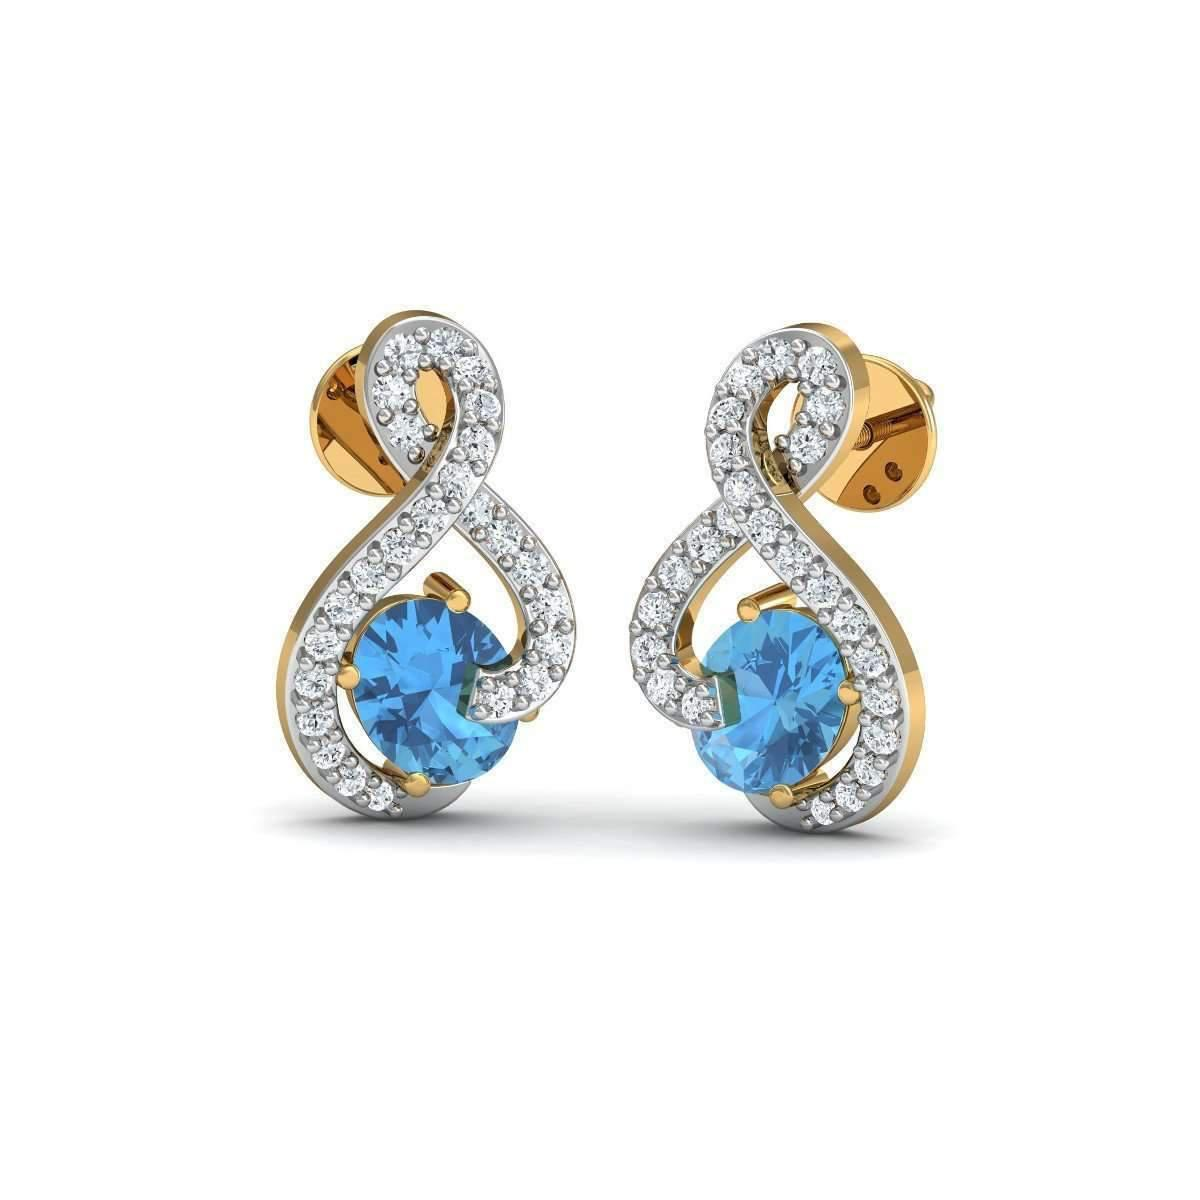 Diamoire Jewels Prong Aquamarine and Diamond Studs in 18kt Yellow Gold XIFm8wlpy